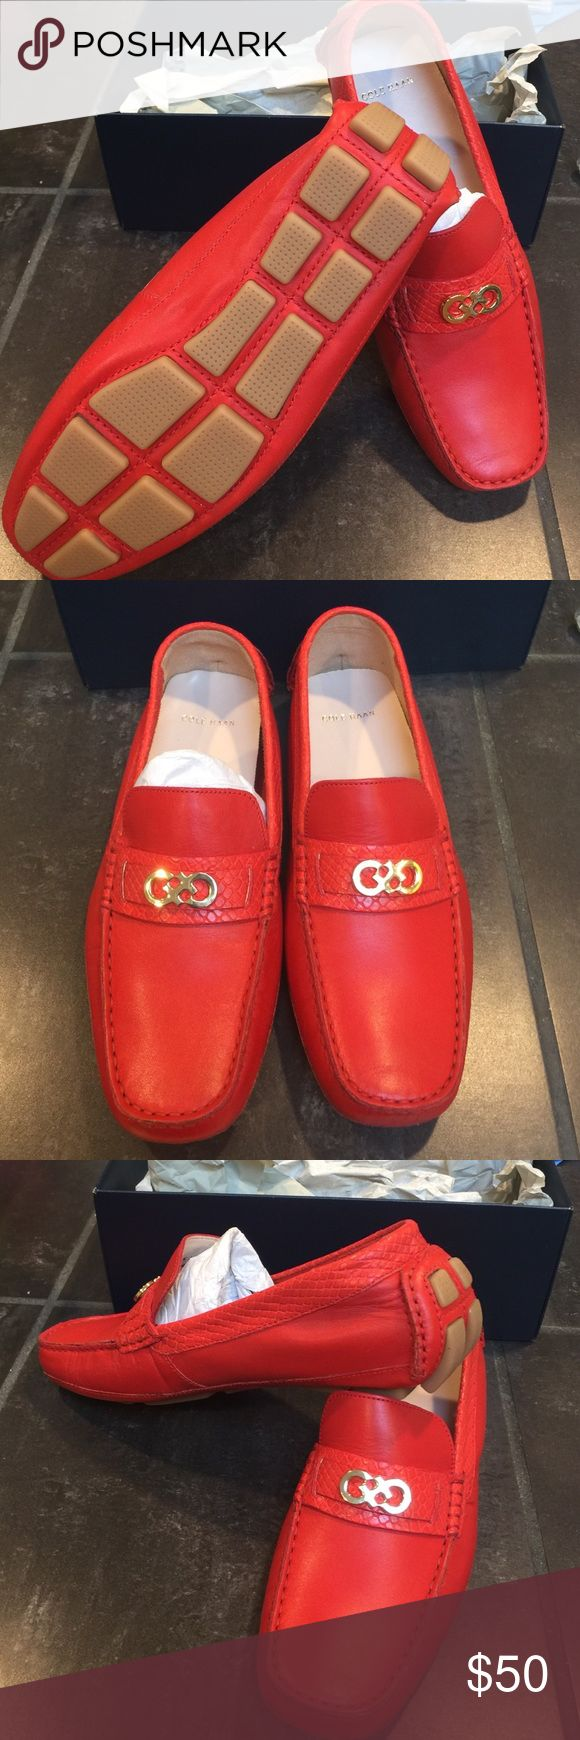 Cole Haan driver Shelby fiery red shoes loafers Fiery red Cole Haan Shelby drivers loafers with logo. Cole Haan Shoes Flats & Loafers